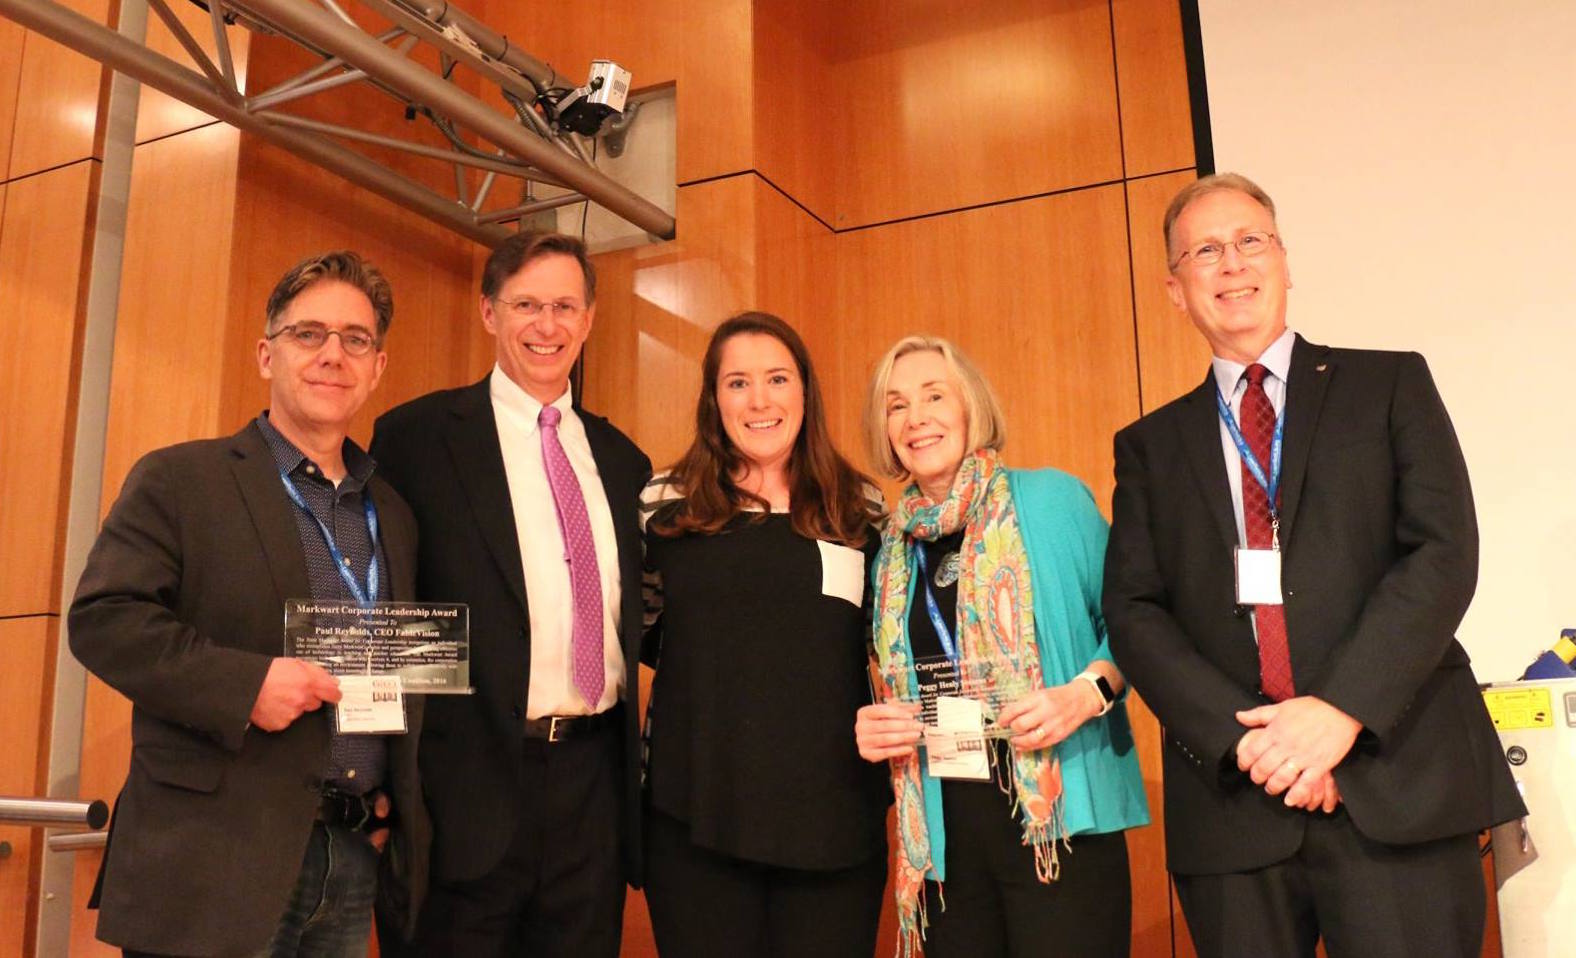 From left to right: FableVision CEO Paul Reynolds, Luther Markwart (Terry Markwart's brother), Lindsay Markwart (Terry Markwart's daughter), Dr. Peggy Healy Stearns, and Thomas Miller, director, ITCG Inkjet Printer Marketing, Canon U.S.A.